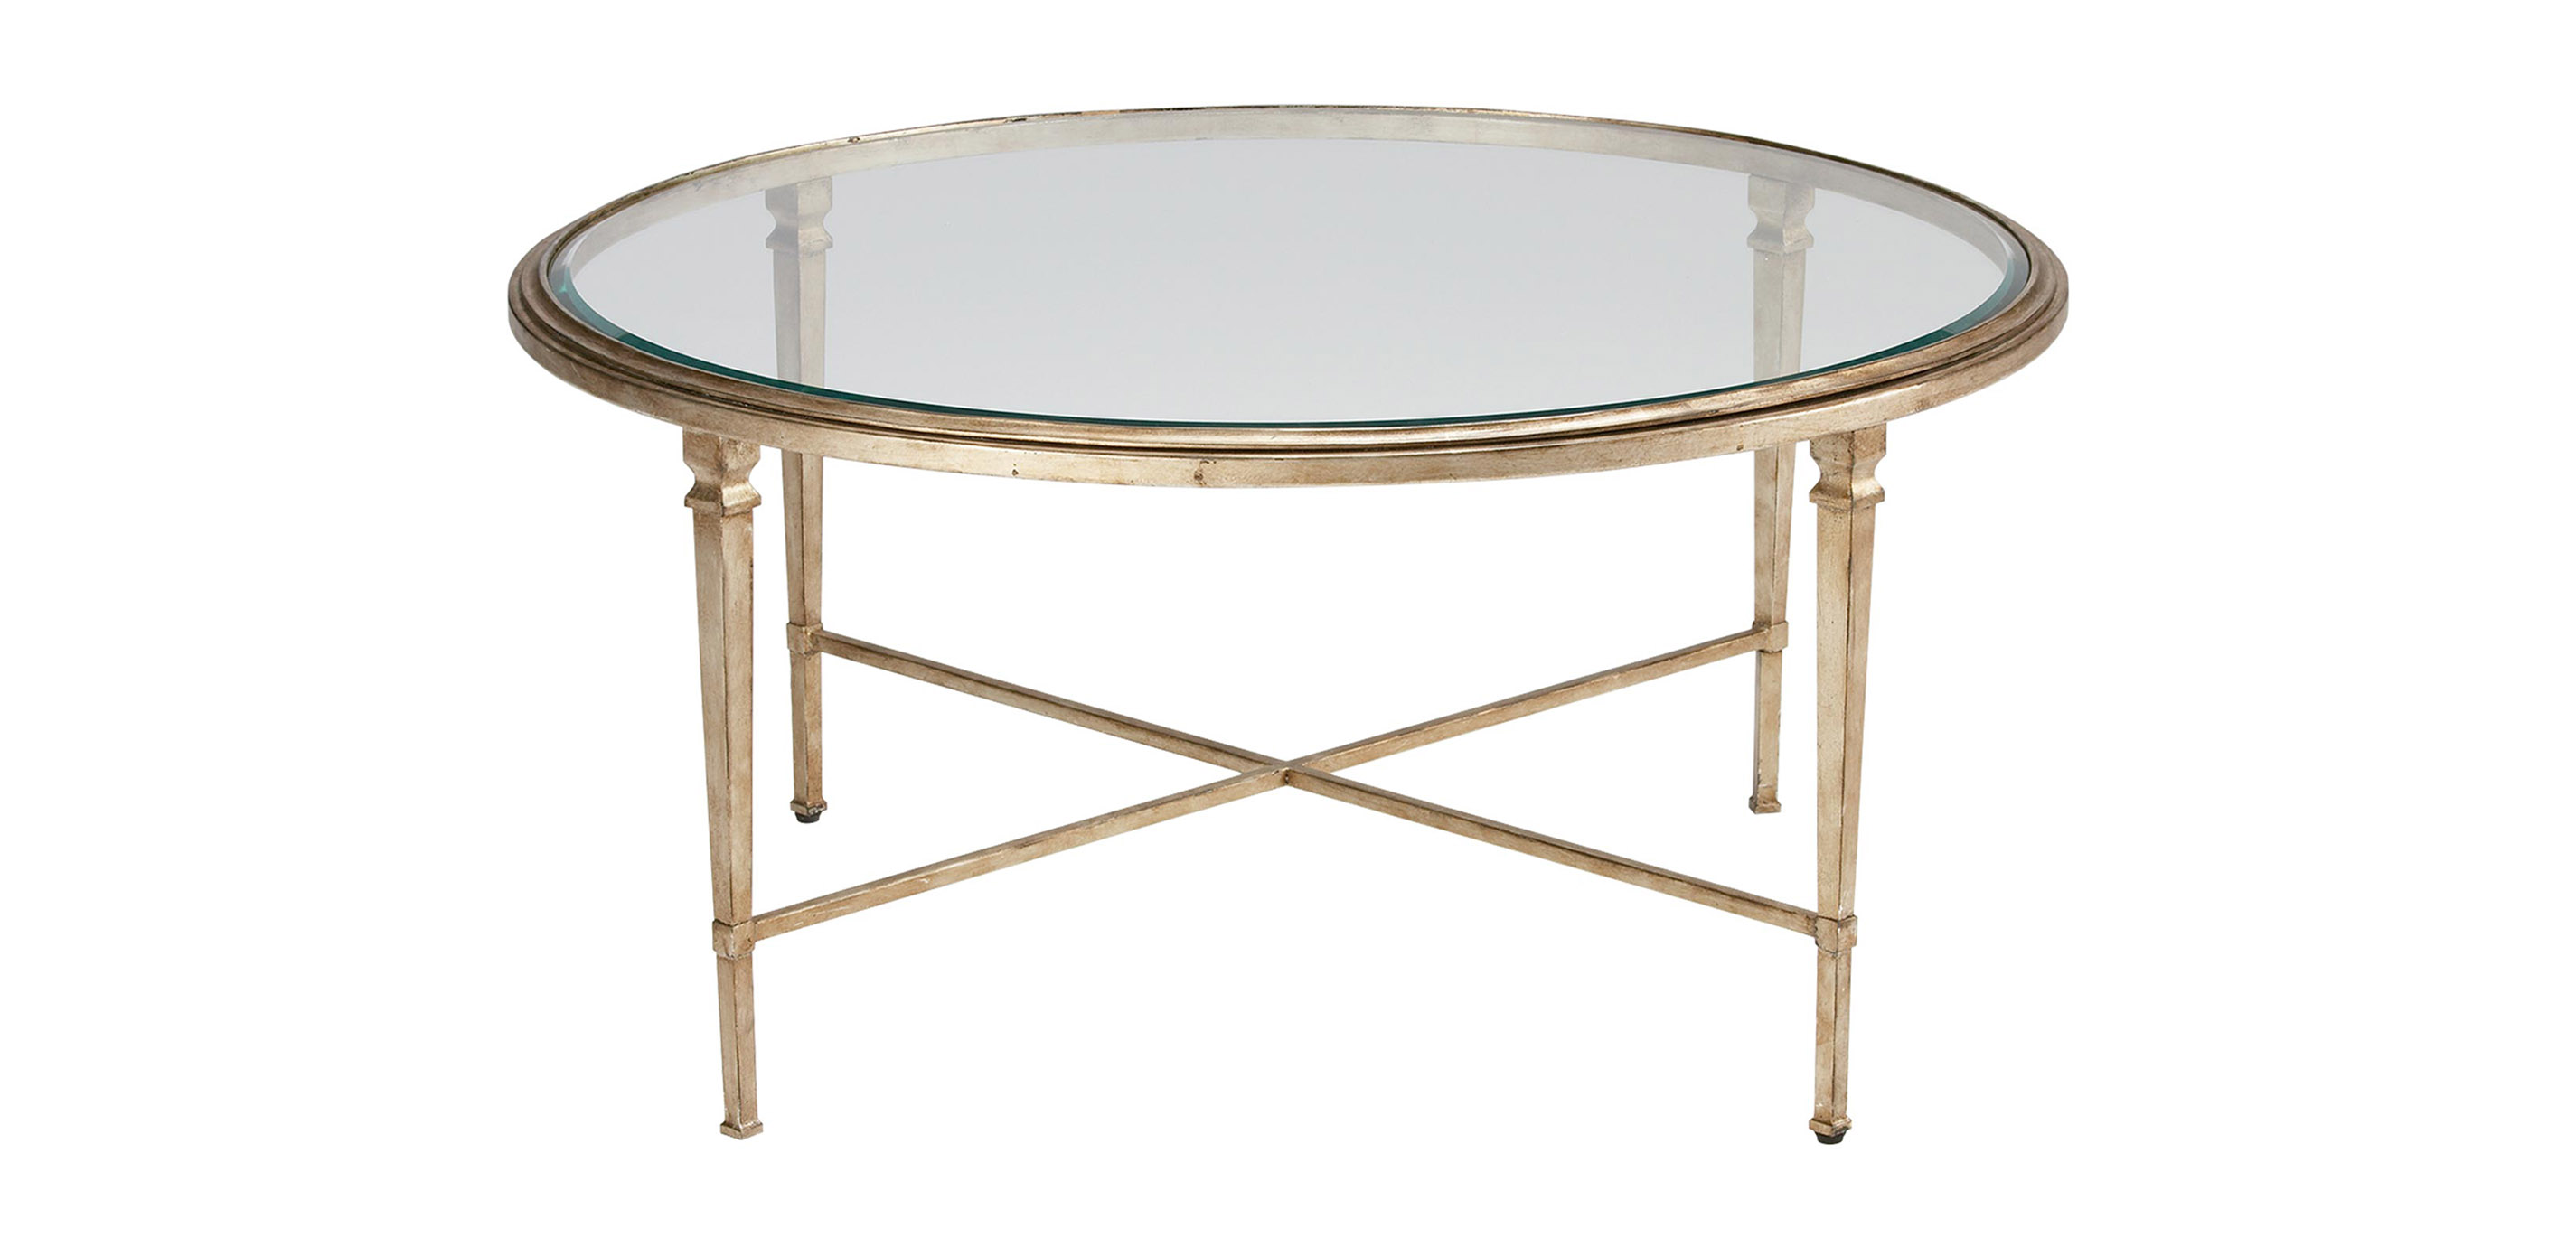 Heron Round Coffee Table